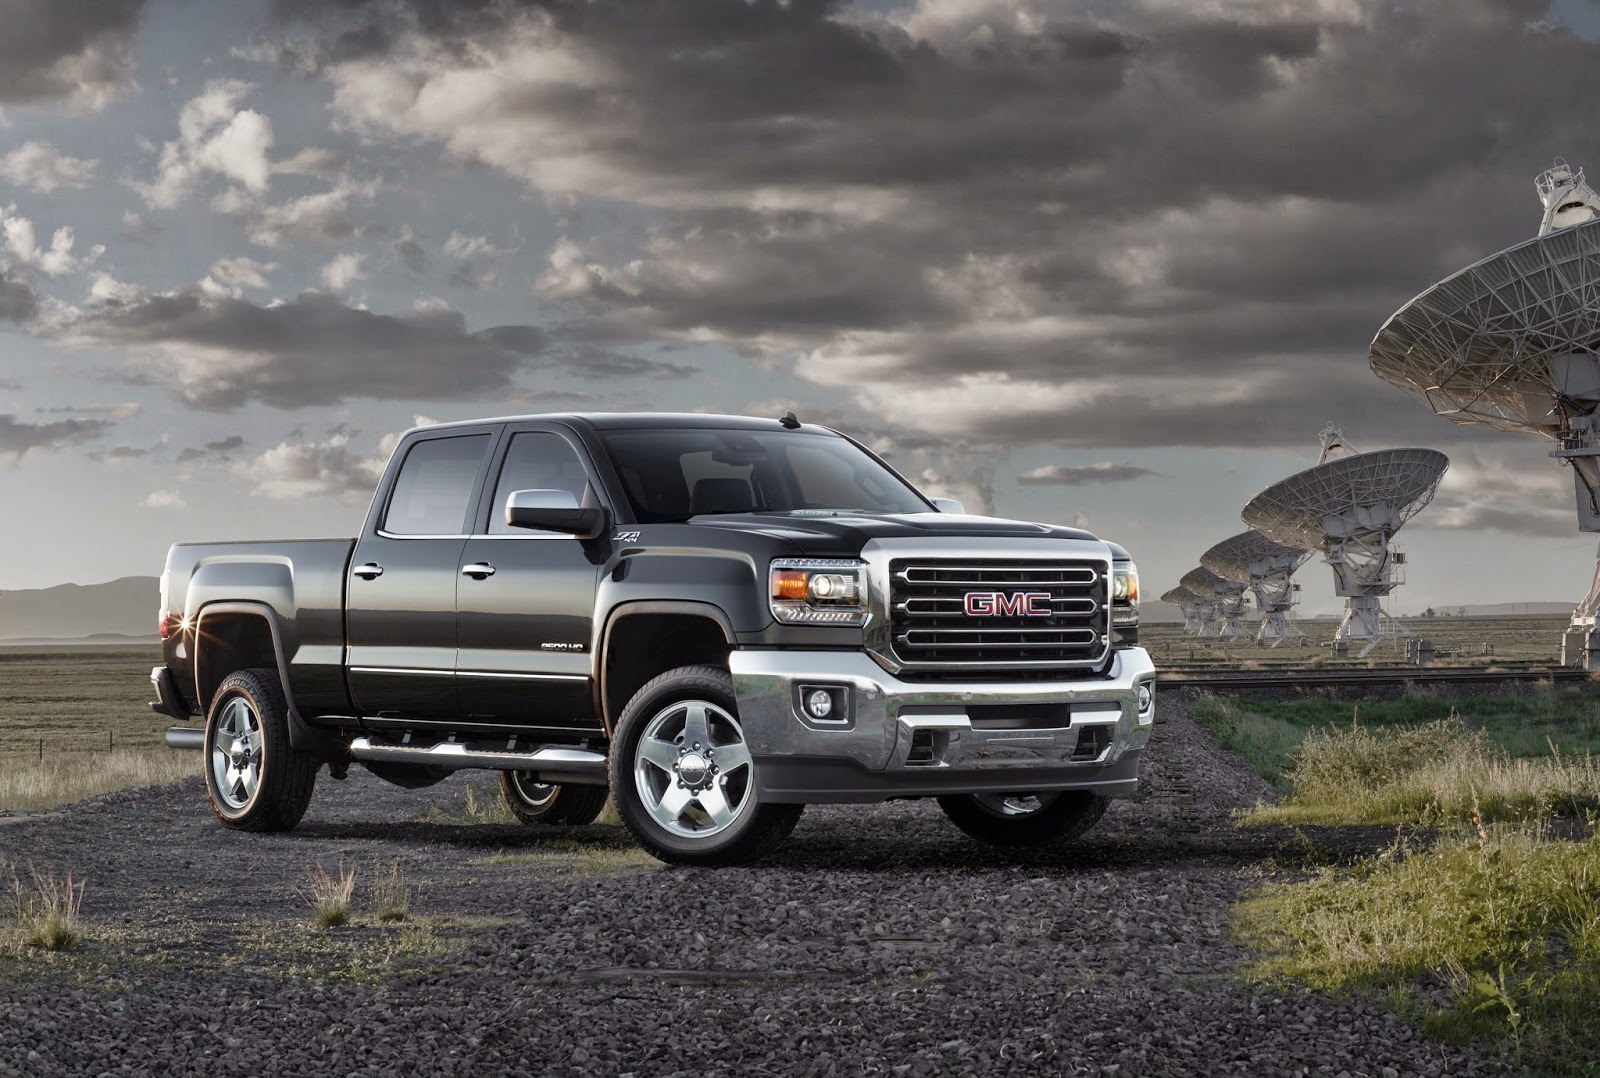 meet the kumars 2014 gmc